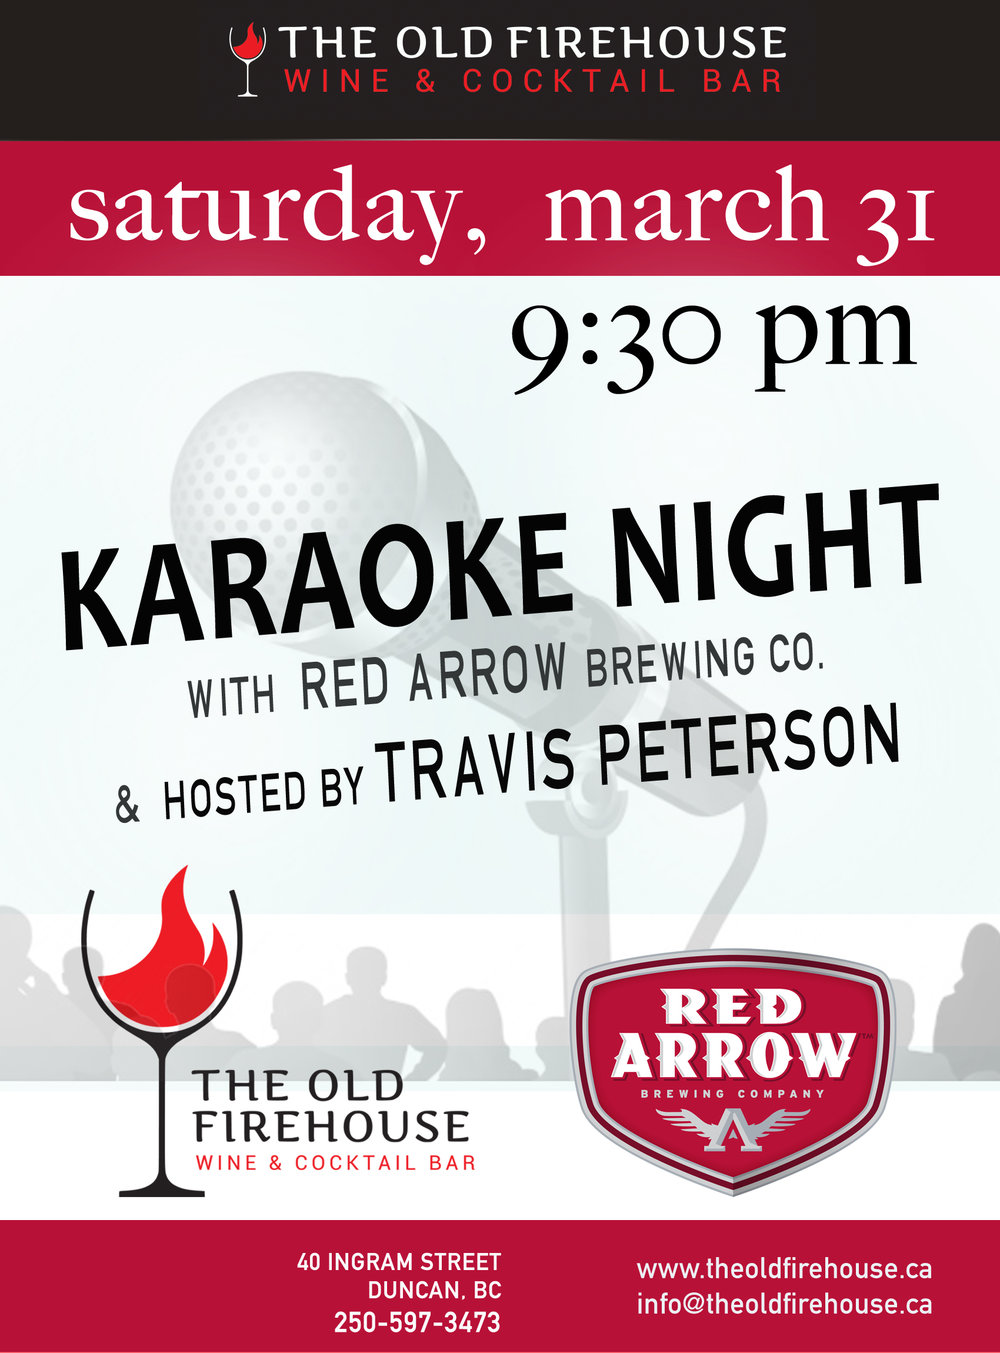 karaoke poster red arrowmarch 31-bw.jpg